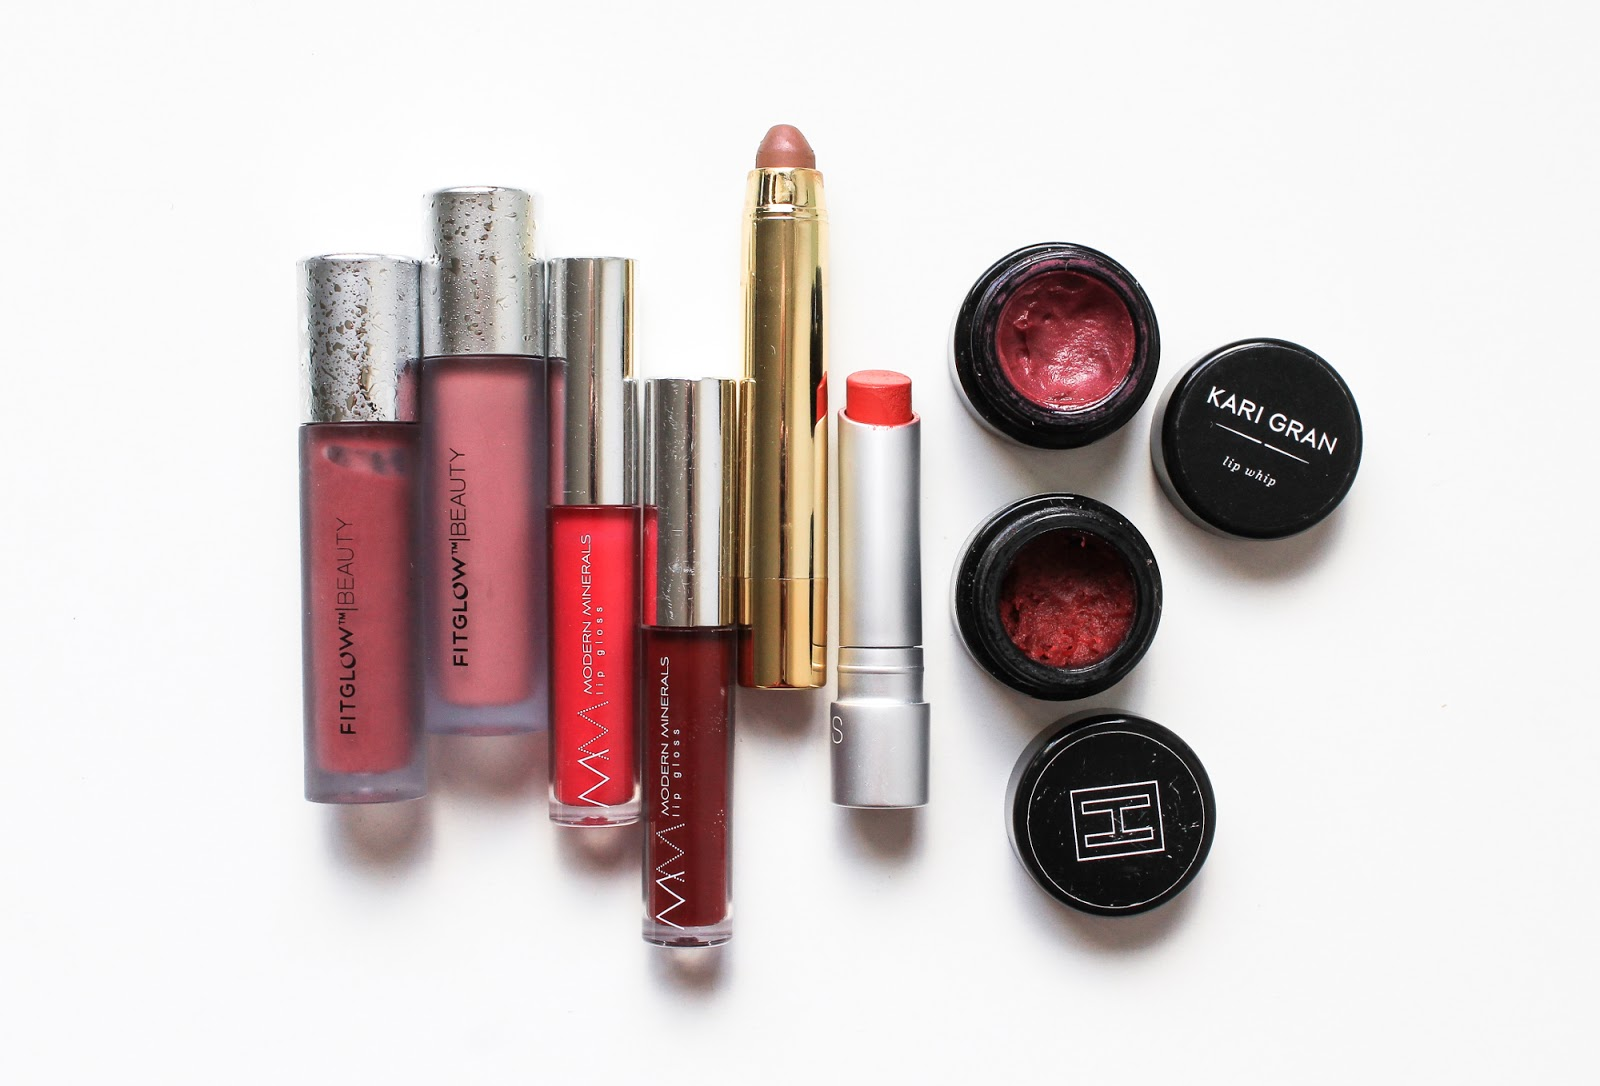 Natural Organic Makeup Lipstick, Lip Gloss, Lip Balm, Fitglow, Modern Minerals, Axiology, RMS Beauty, H is for Love, Kari Gran